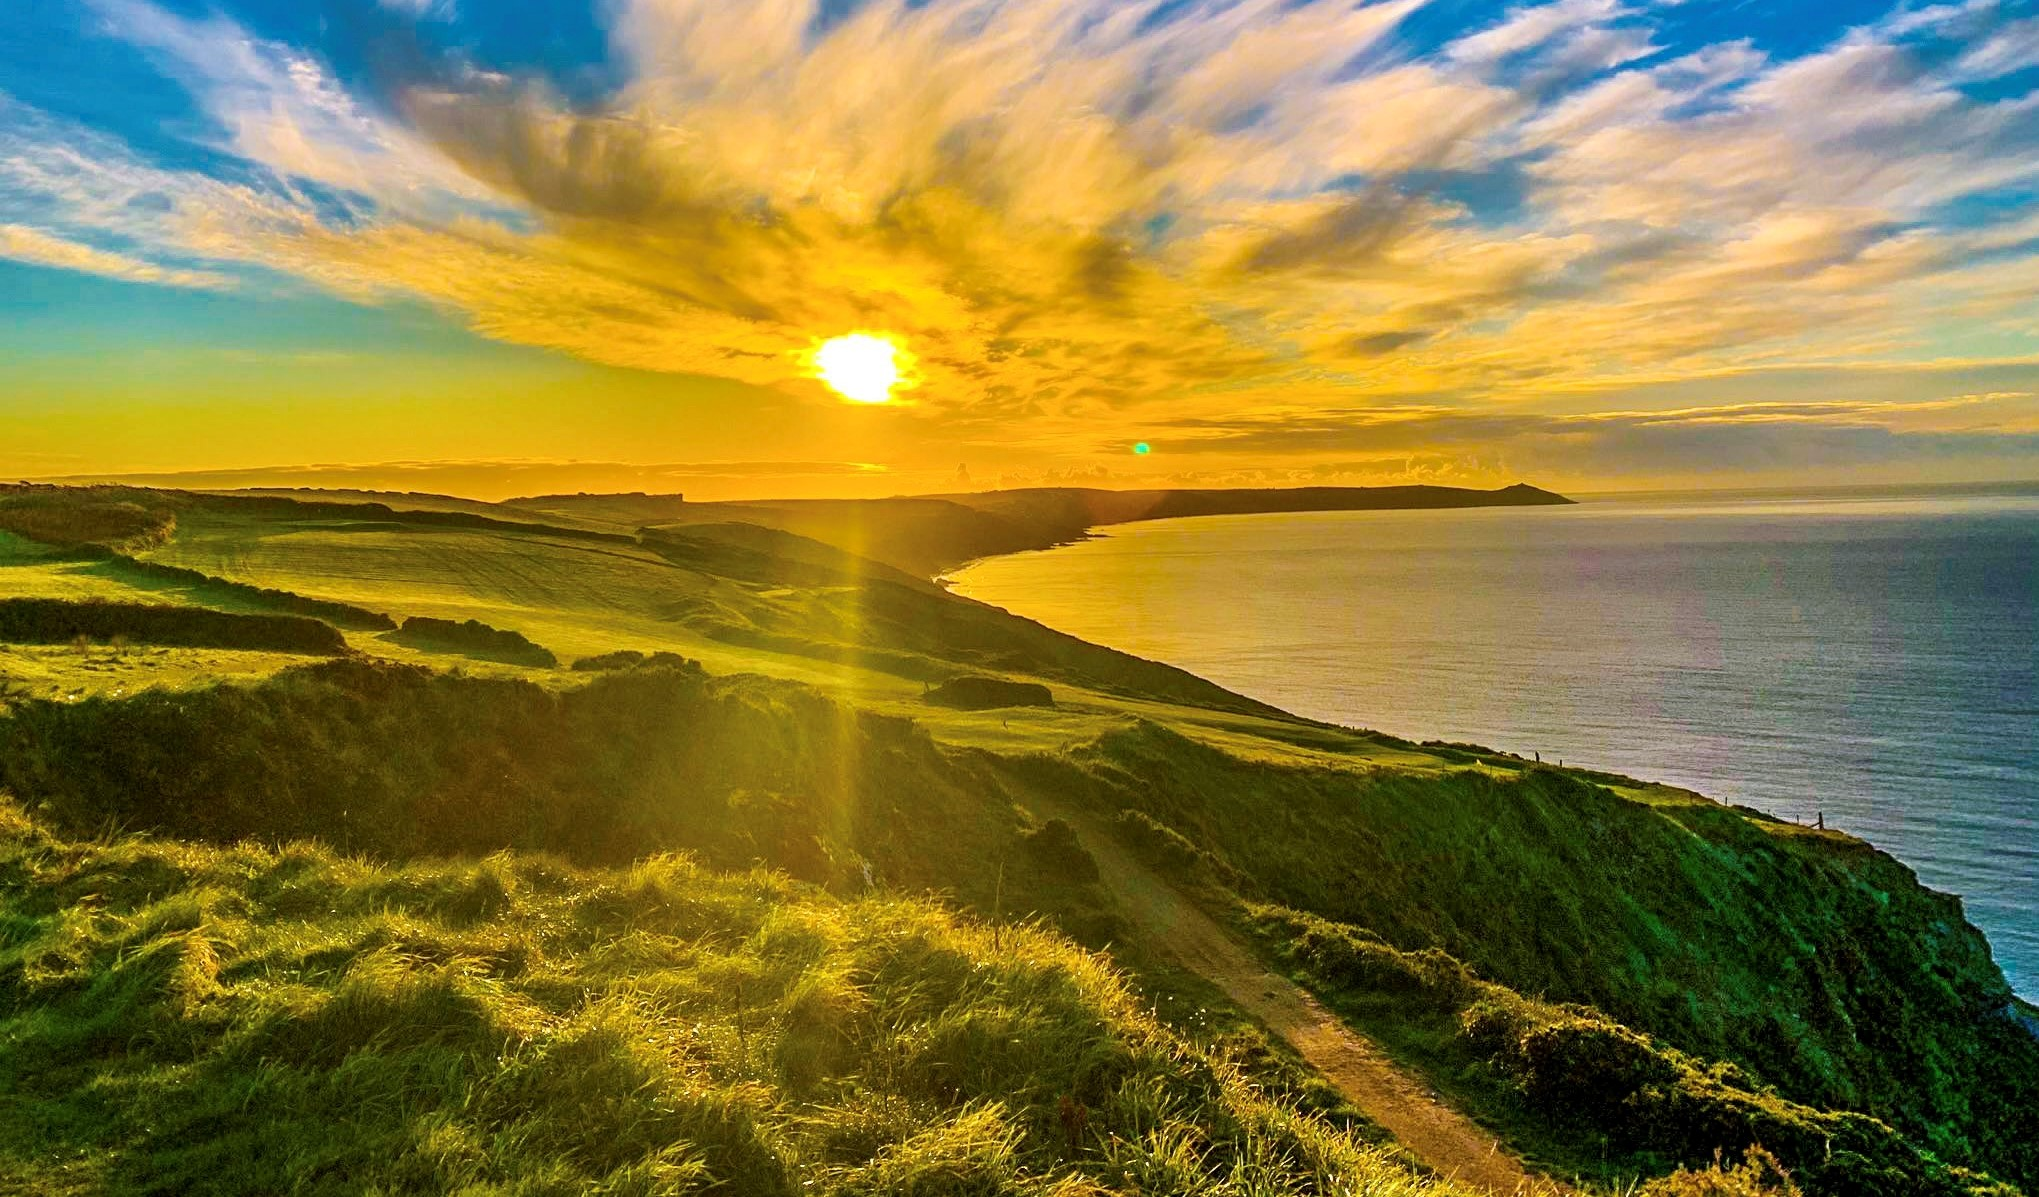 Whitsand Bay's sustainable plan earns them top award